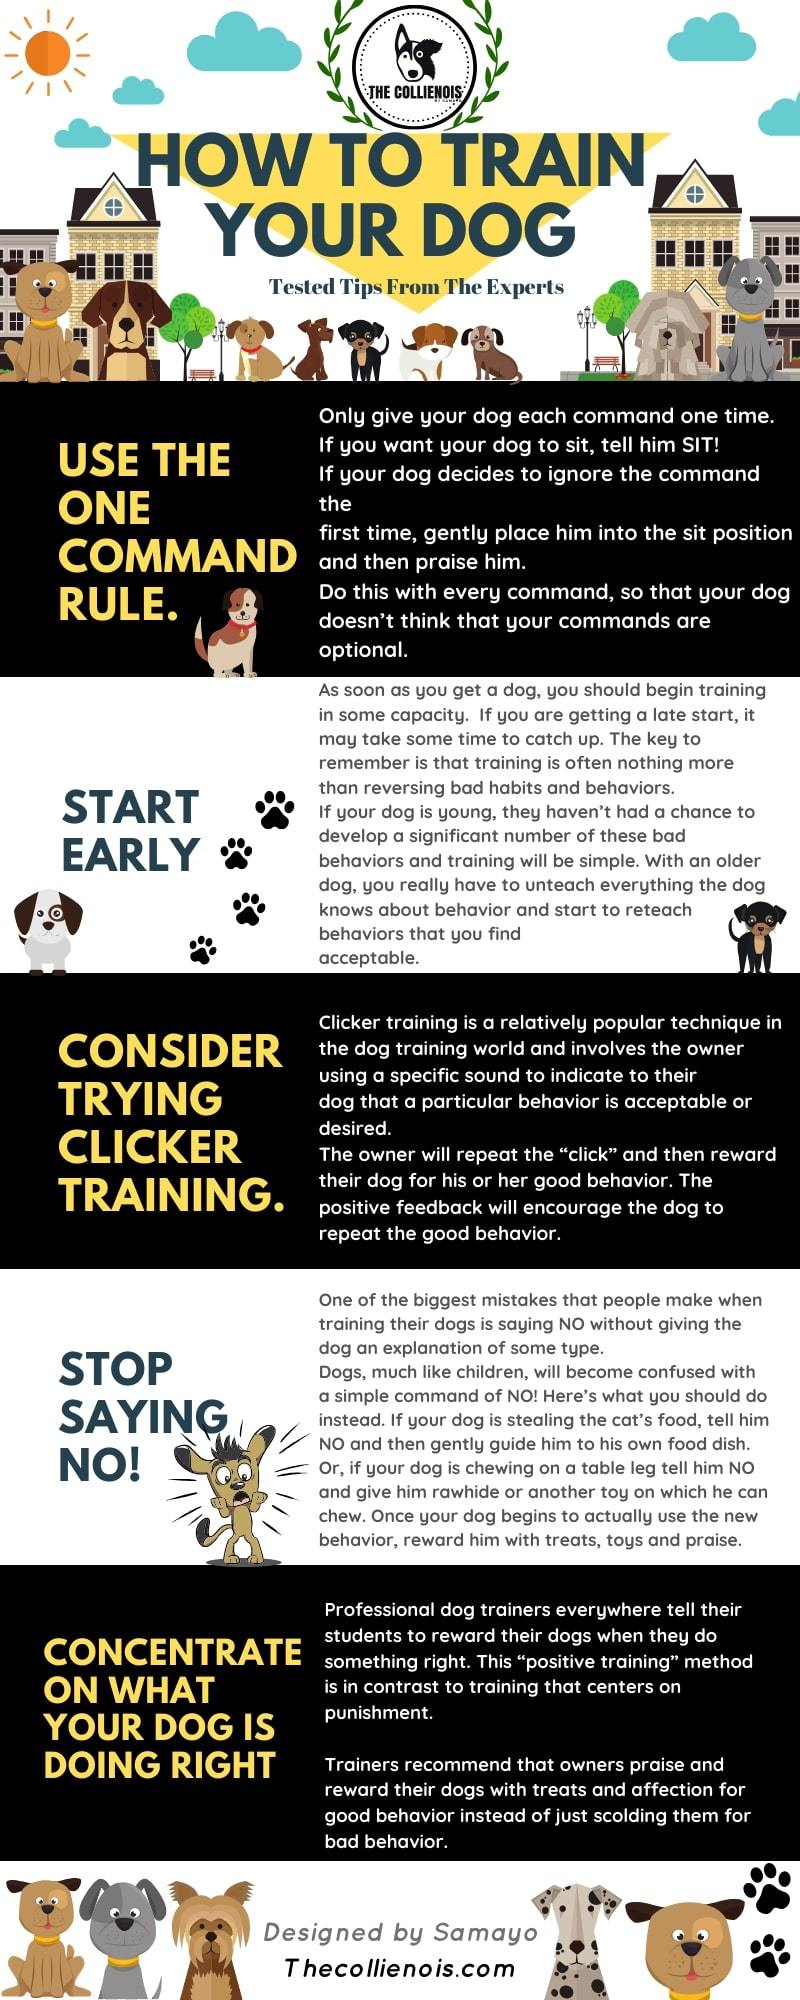 50 Best Dog Training Tips [INFOGRAPHIC] 2